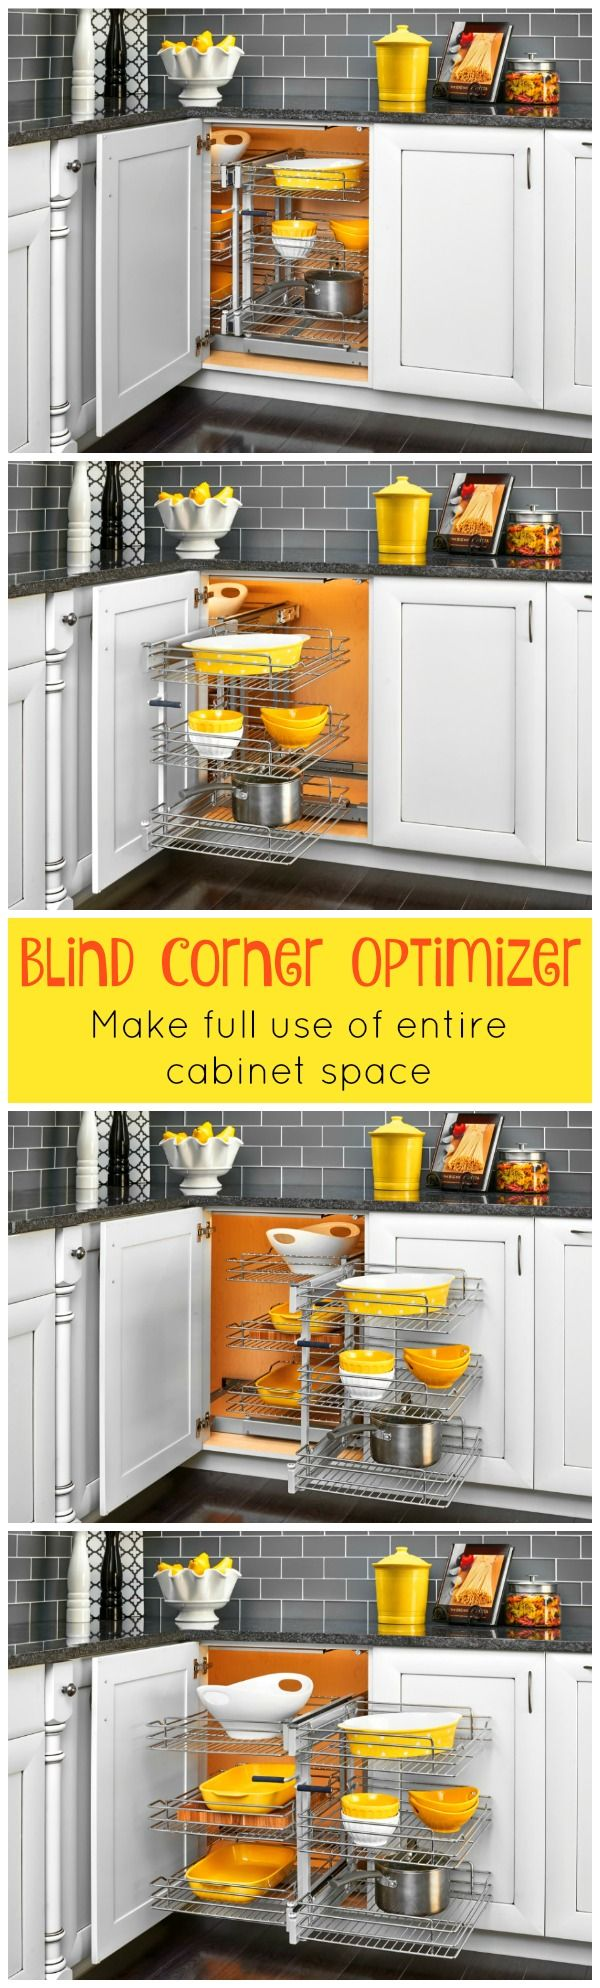 Rev a shelf basket organizer maximizes blind corner for Technologie cuisine